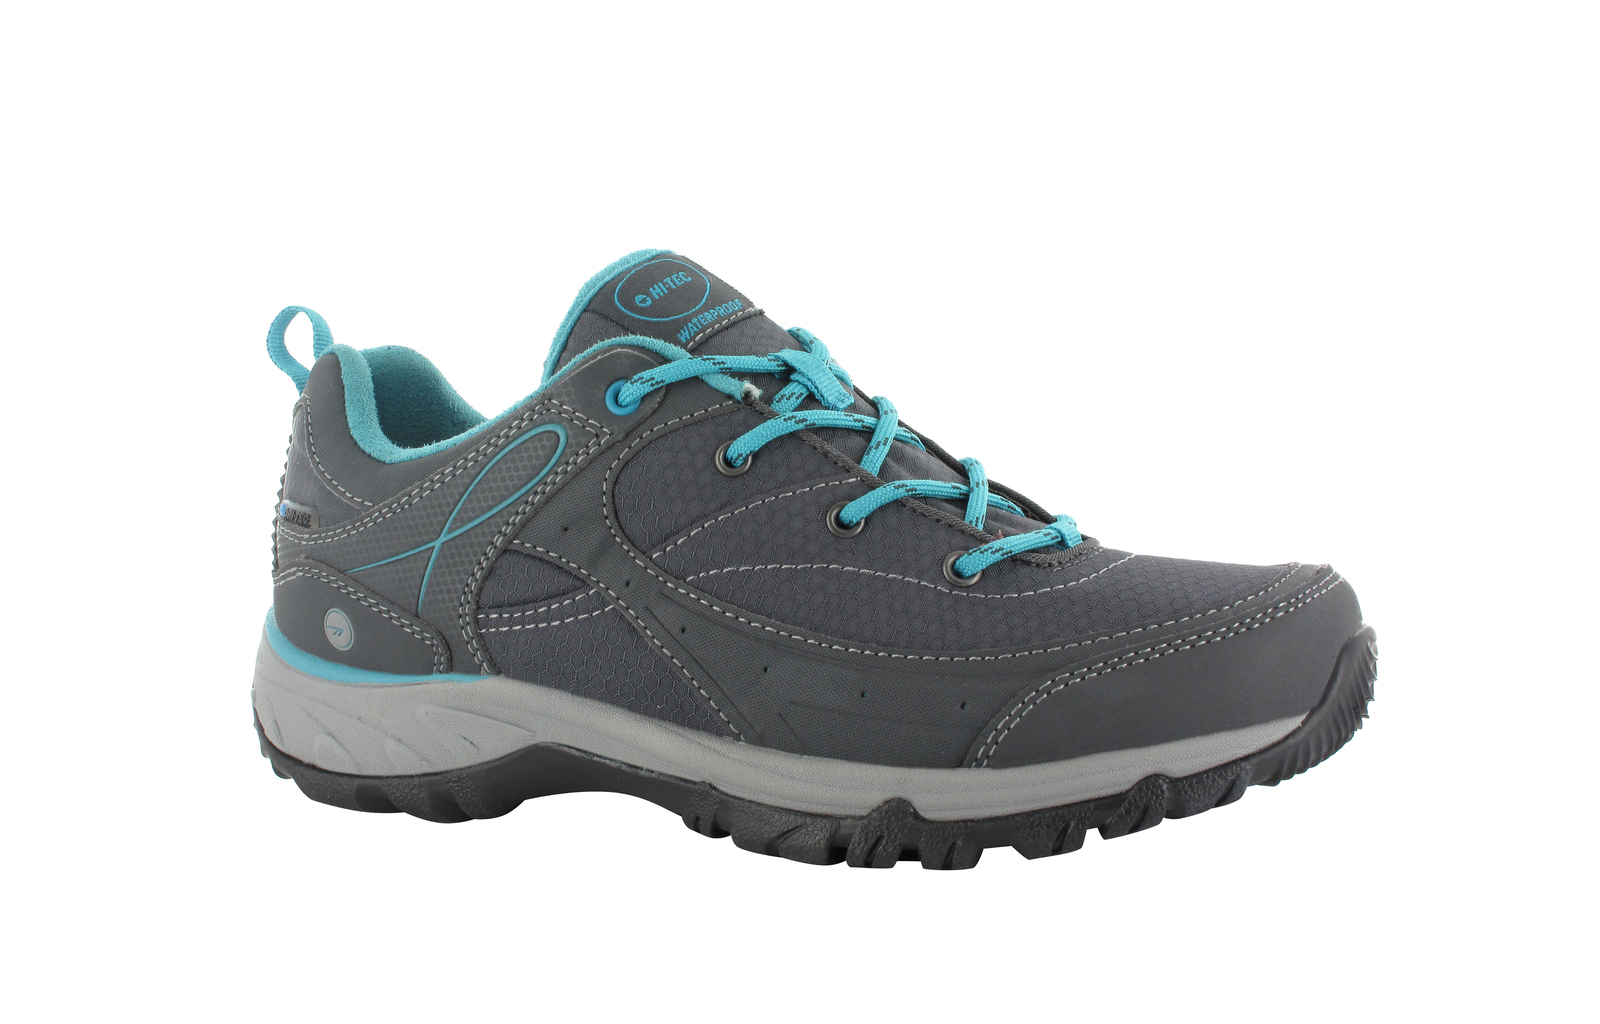 a6d0ea716db Details about Hi-Tec Equilibrio Bijou Low I Womens Sports Boots Charcoal  Tile Blue Size 9 US